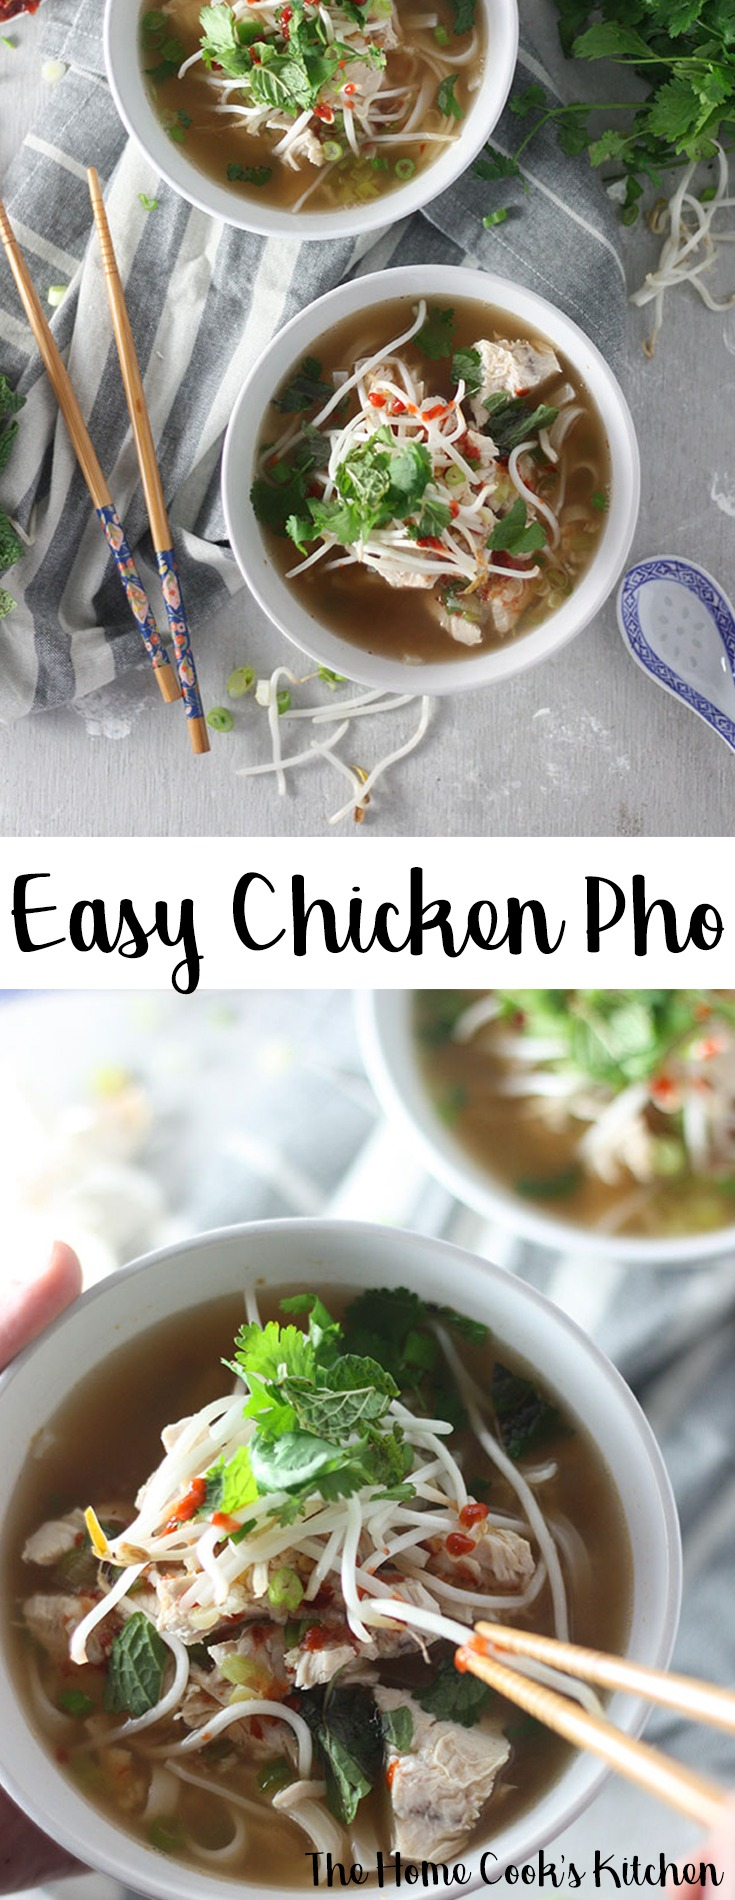 This easy chicken pho recipe really packs a punch with a hint of spice mixed in with some deliciously fresh flavours. A perfect hearty, warming and filling soup. #chickenpho #pho #soup